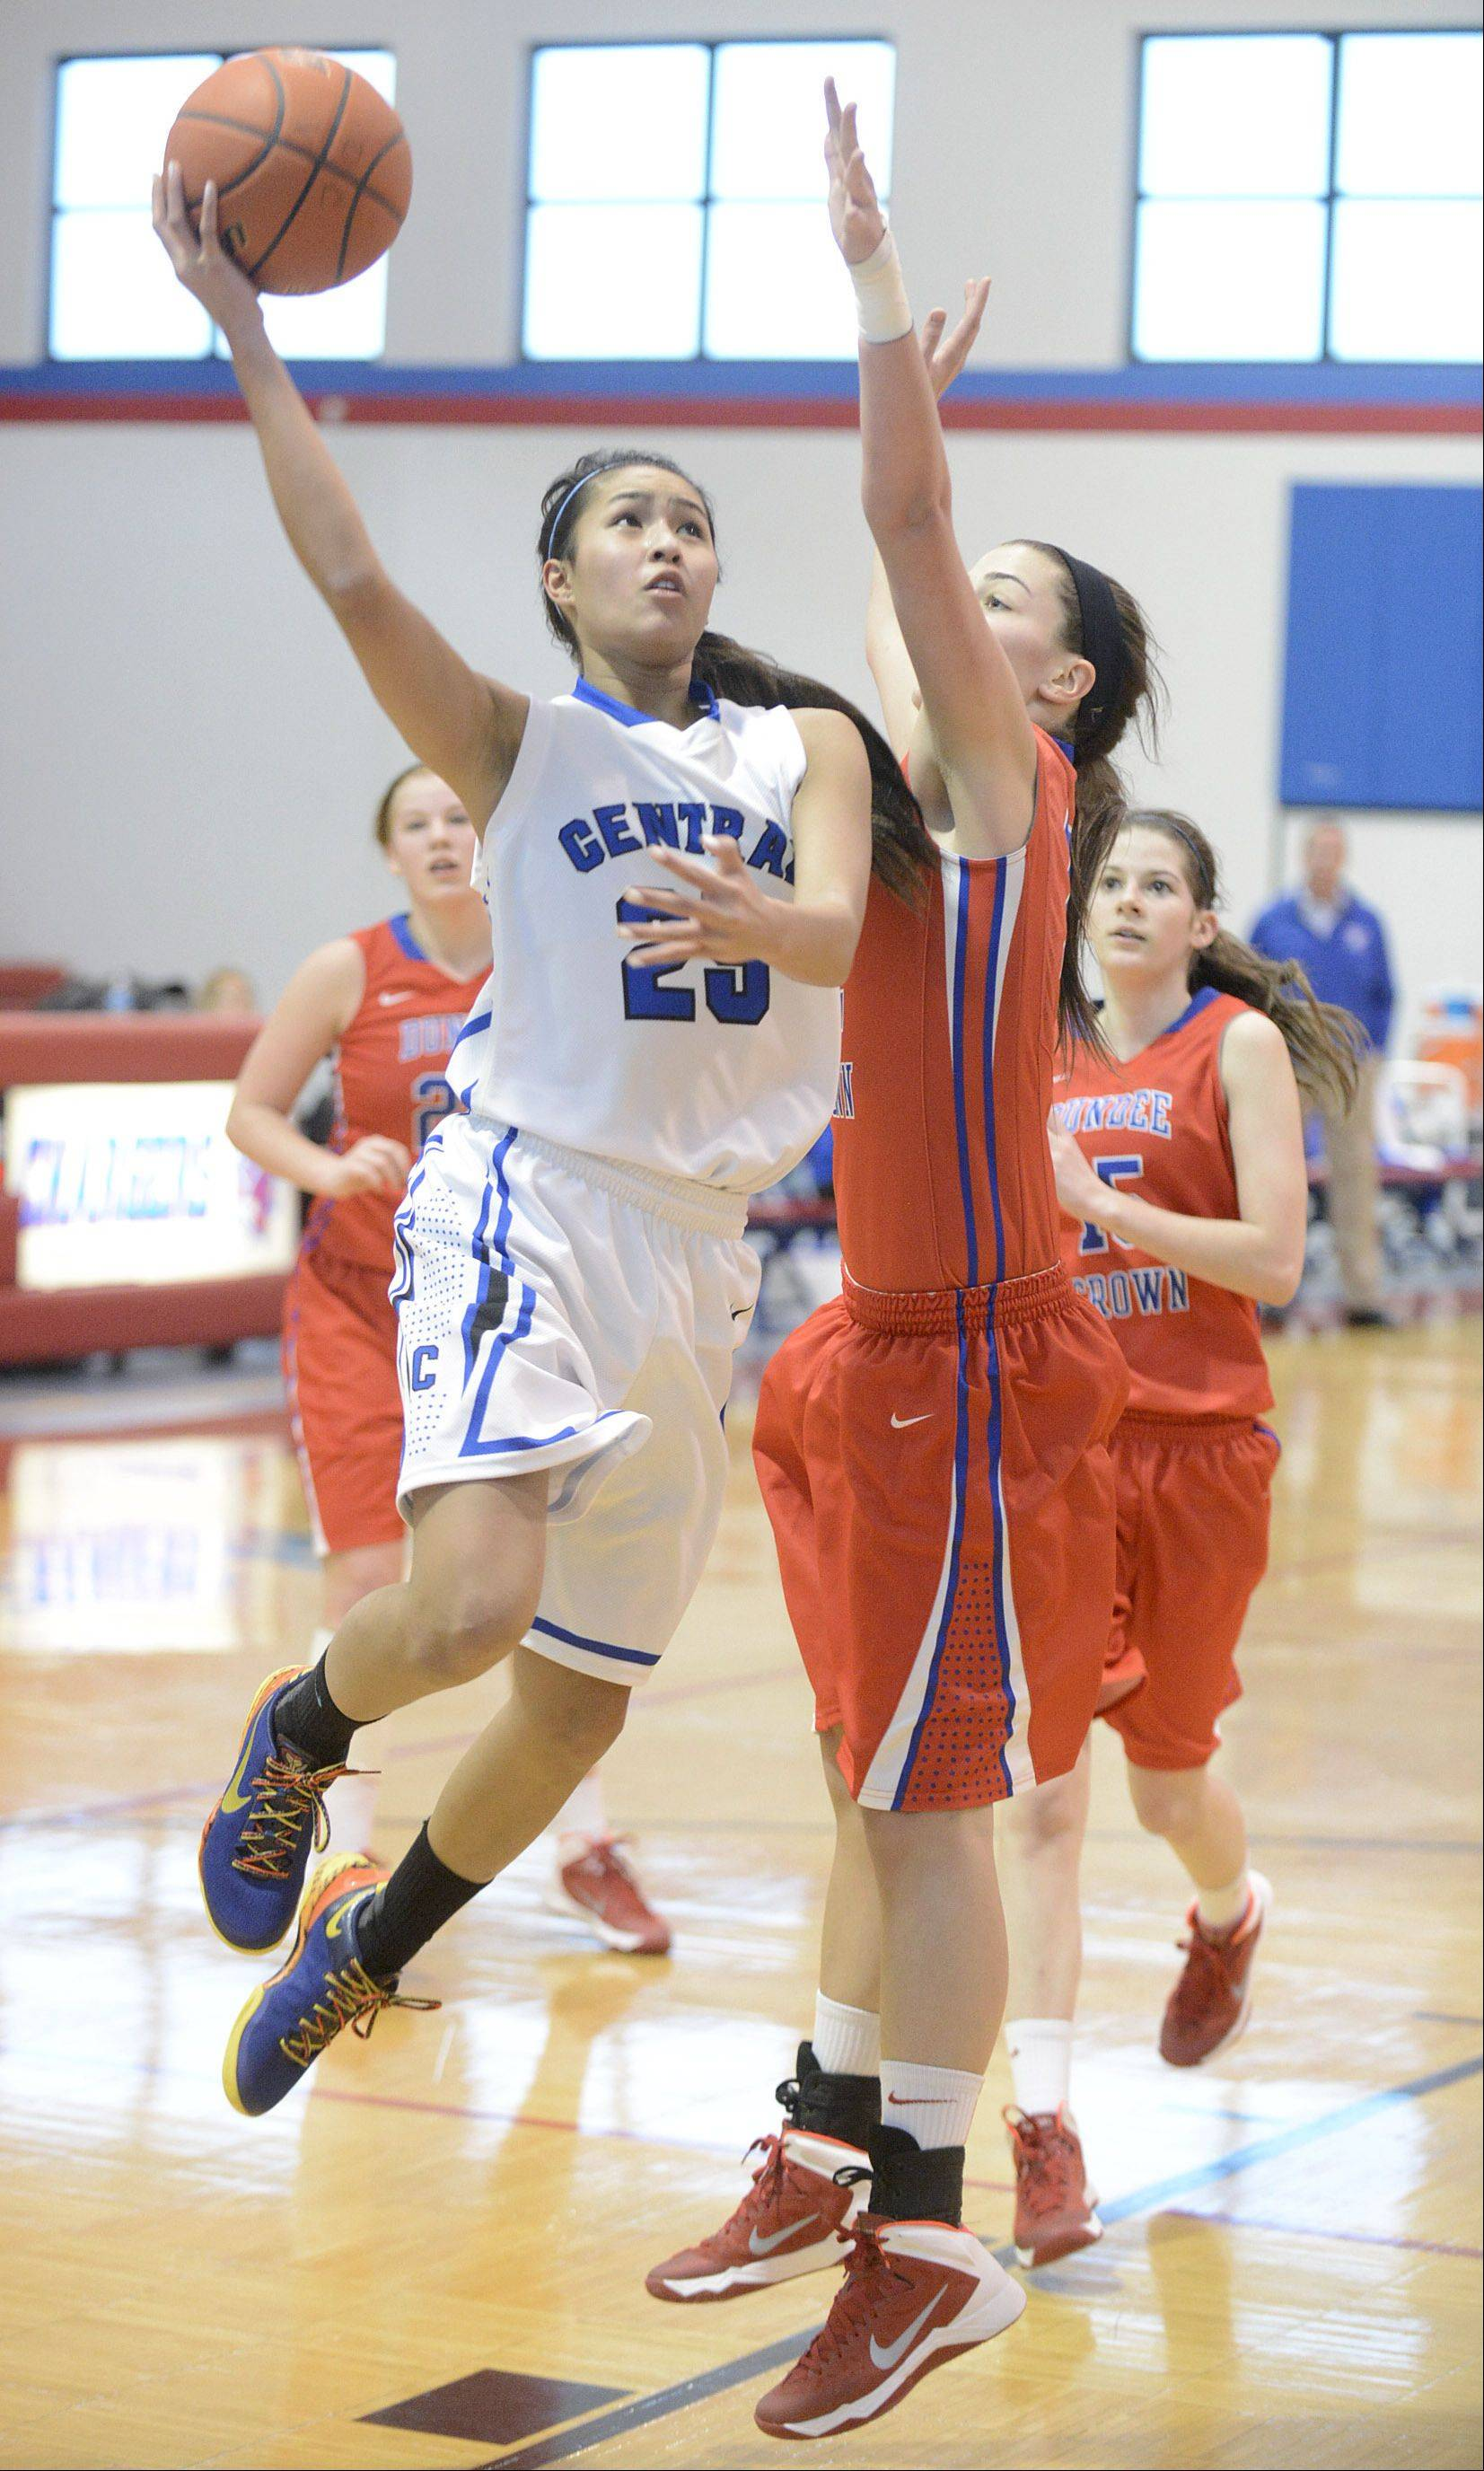 Burlington Central's Sam Cruz shoots over a block by Dundee-Crown's Lauren Lococo in the second quarter on Friday.